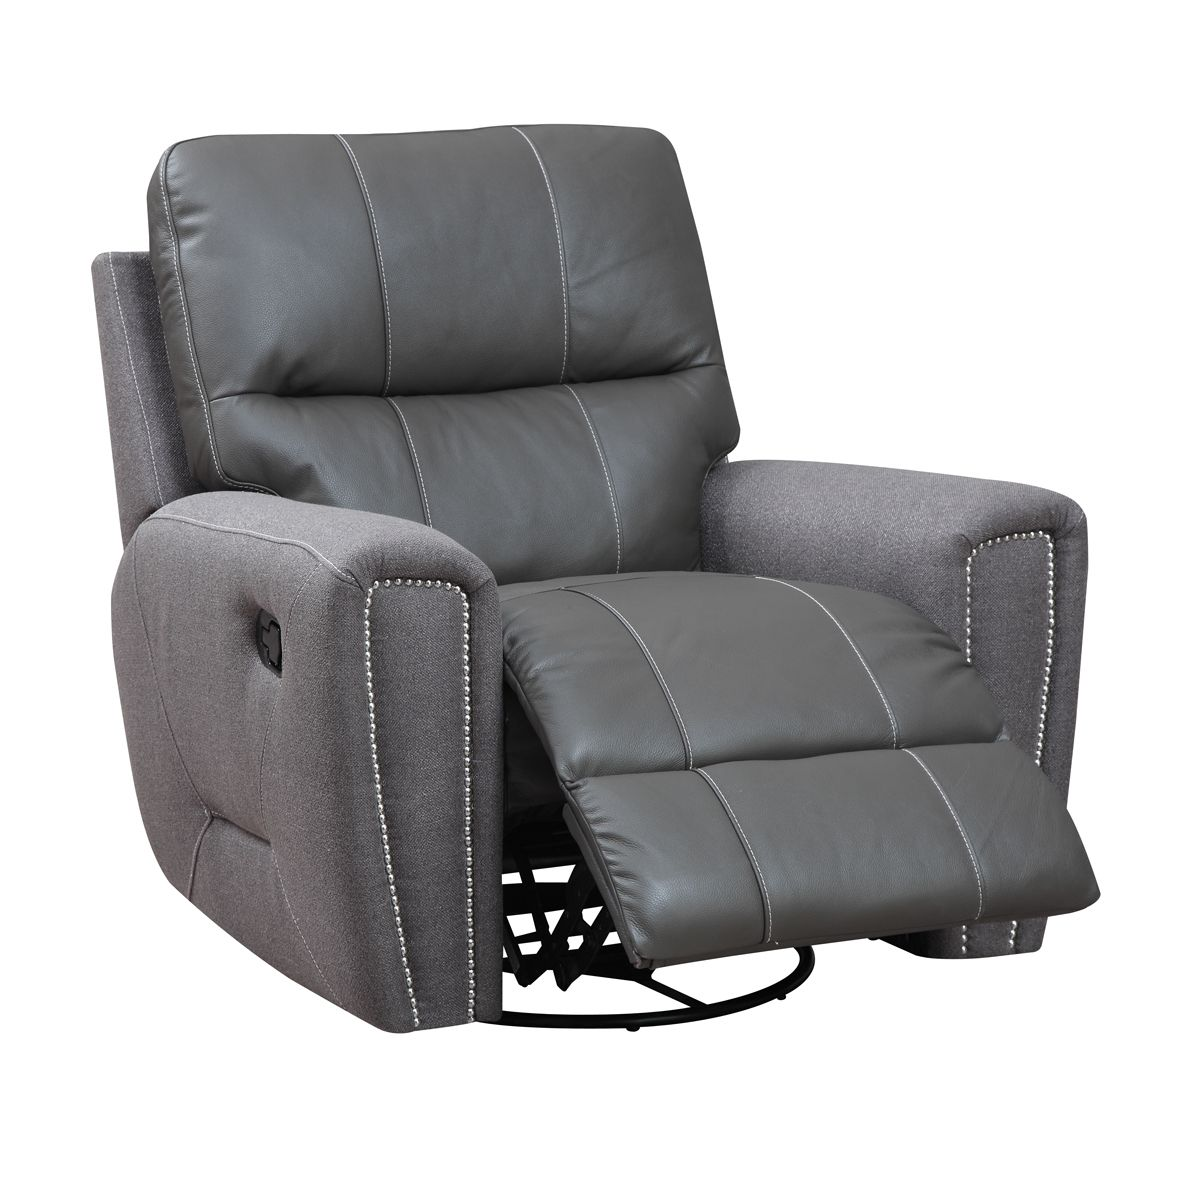 Fashionable Recliners Emerald Grey Leather And Microfiber Swivel Glider Recliner.